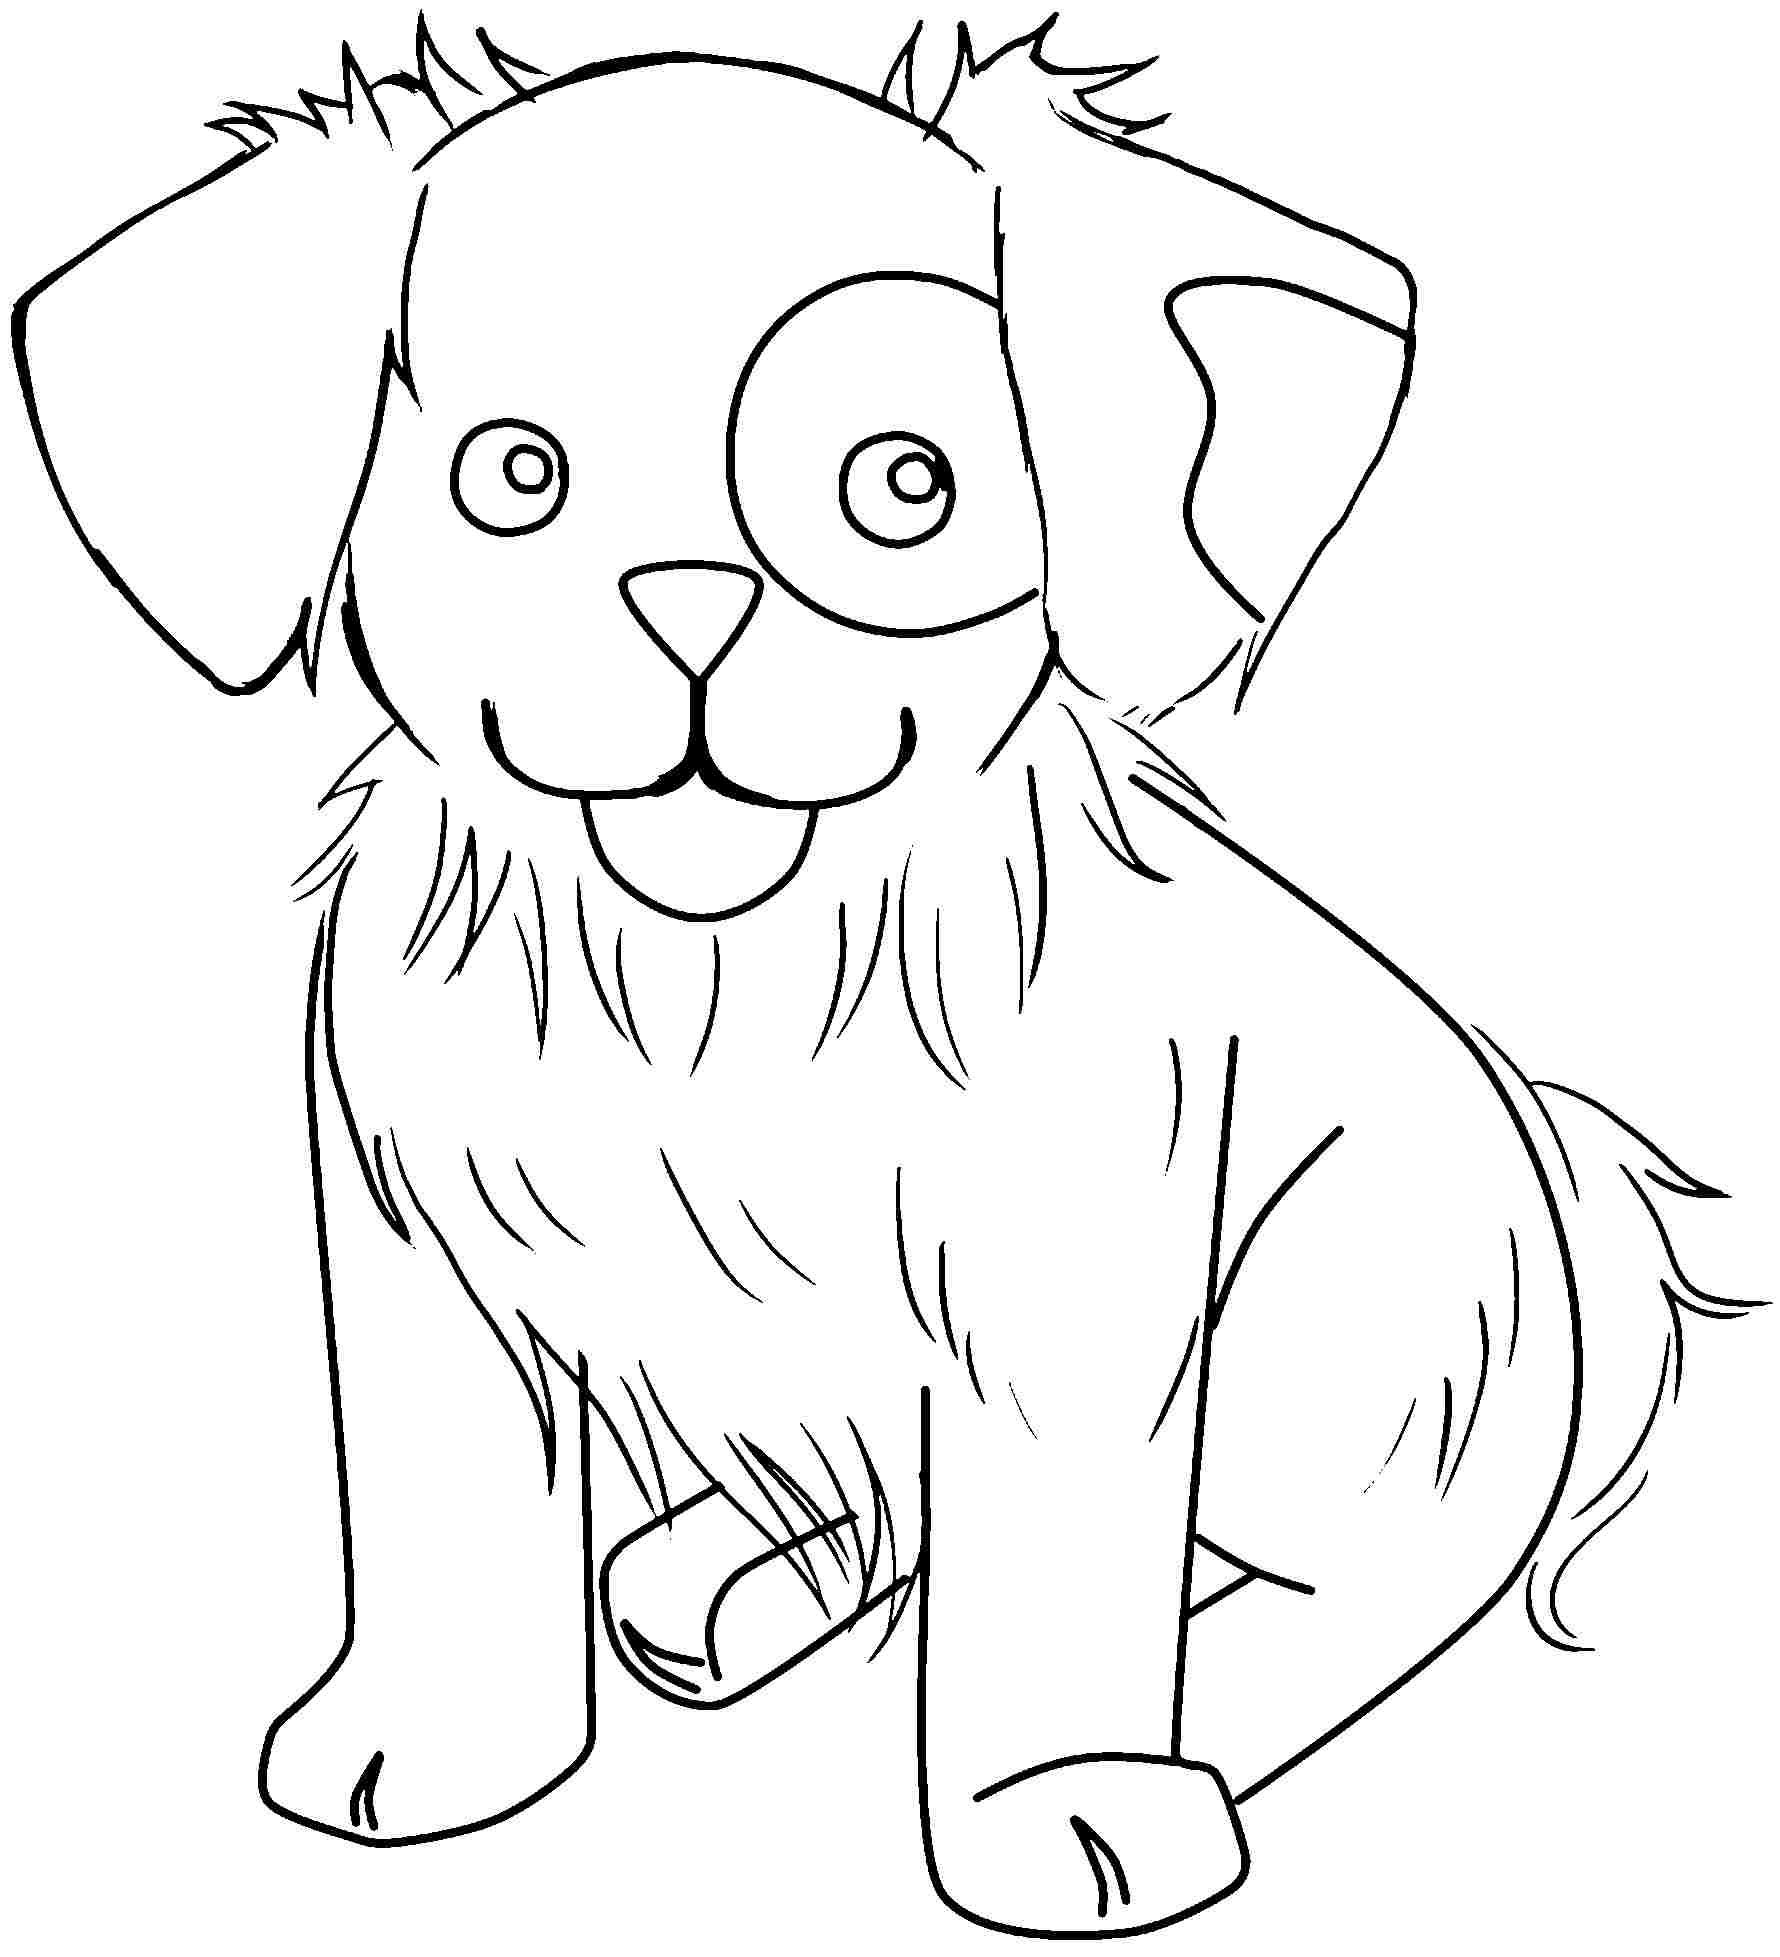 Free animals coloring pages for kids to print - Printable Dog Coloring Pages Gif Cute Dogs Coloring Coloring